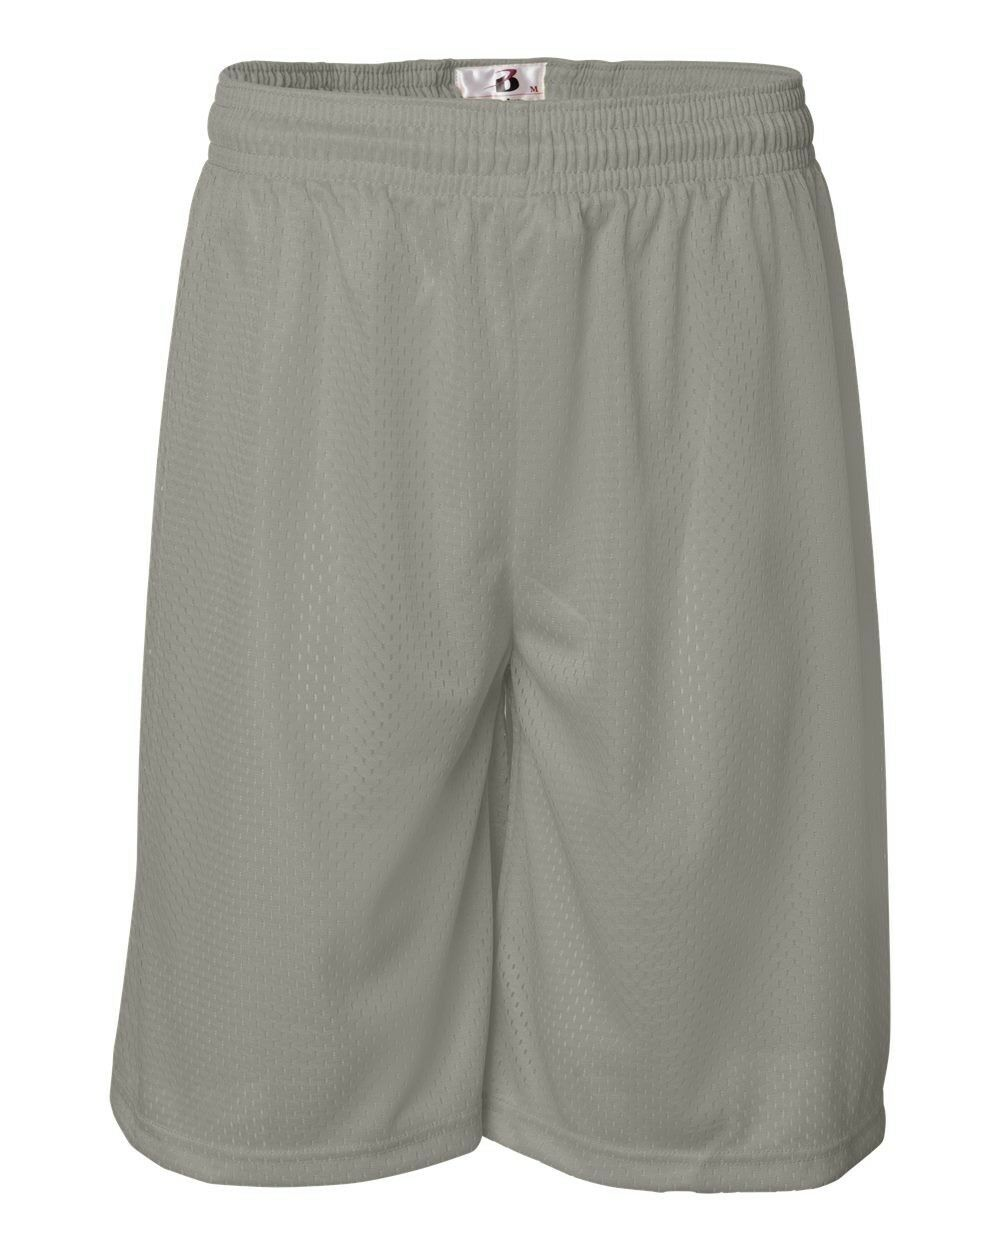 7211 Badger 11/'/' Inseam Pro Mesh Shorts Polyester with liner New Dri Fit